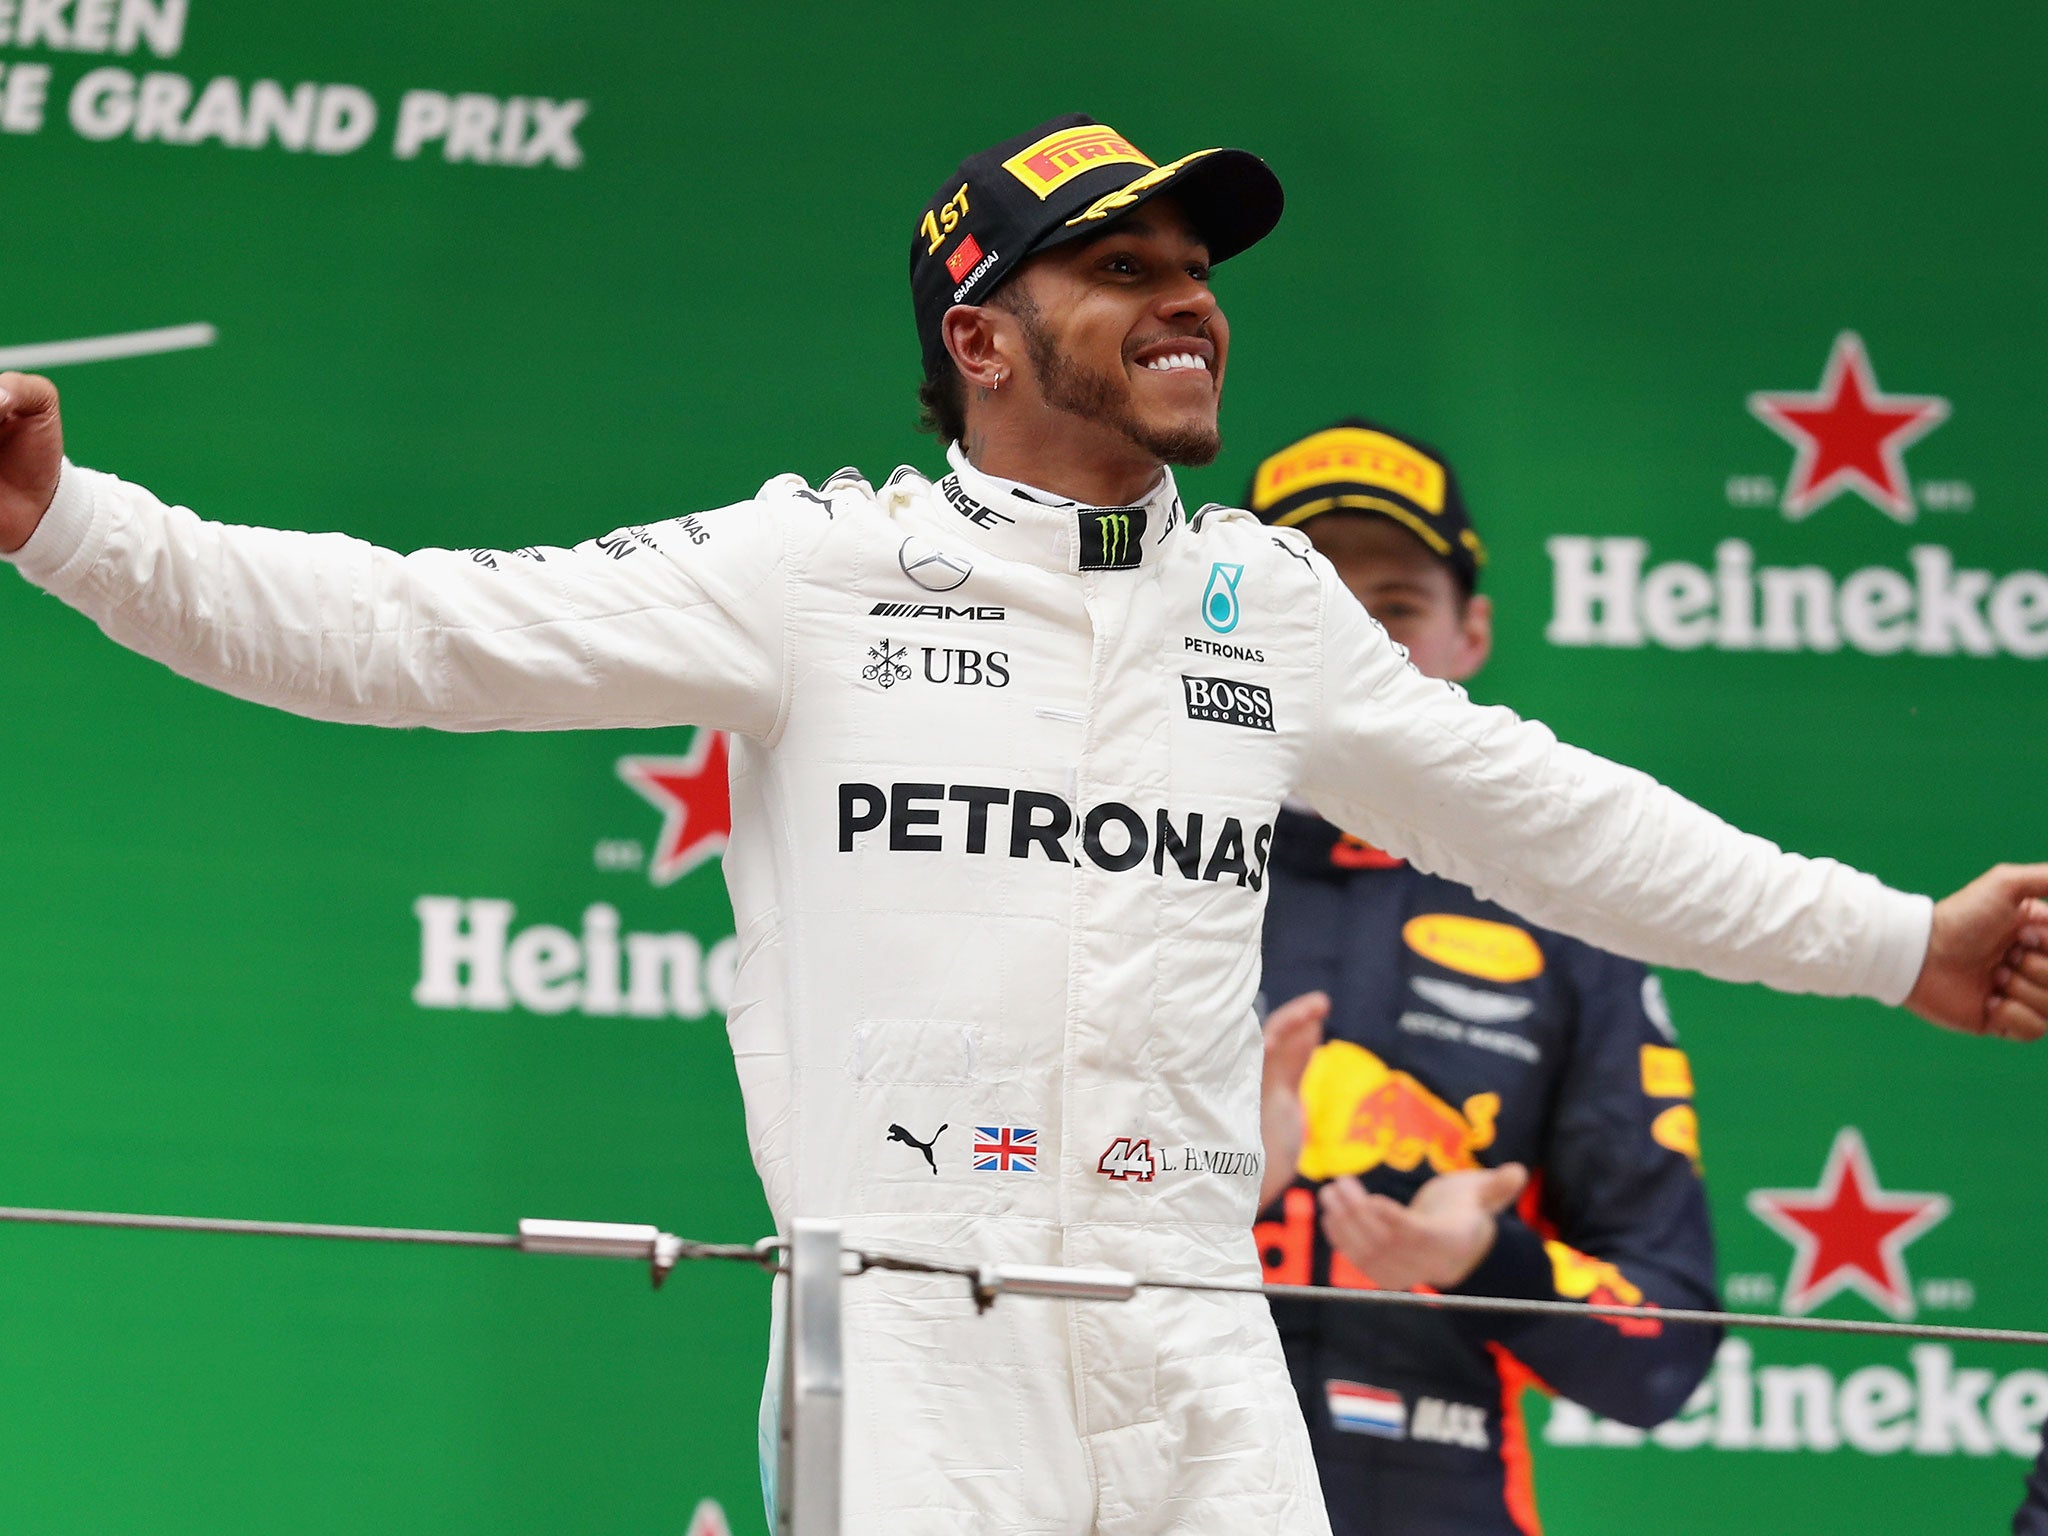 chinese grand prix 2017 results lewis hamilton in dominant display to secure victory ahead of. Black Bedroom Furniture Sets. Home Design Ideas